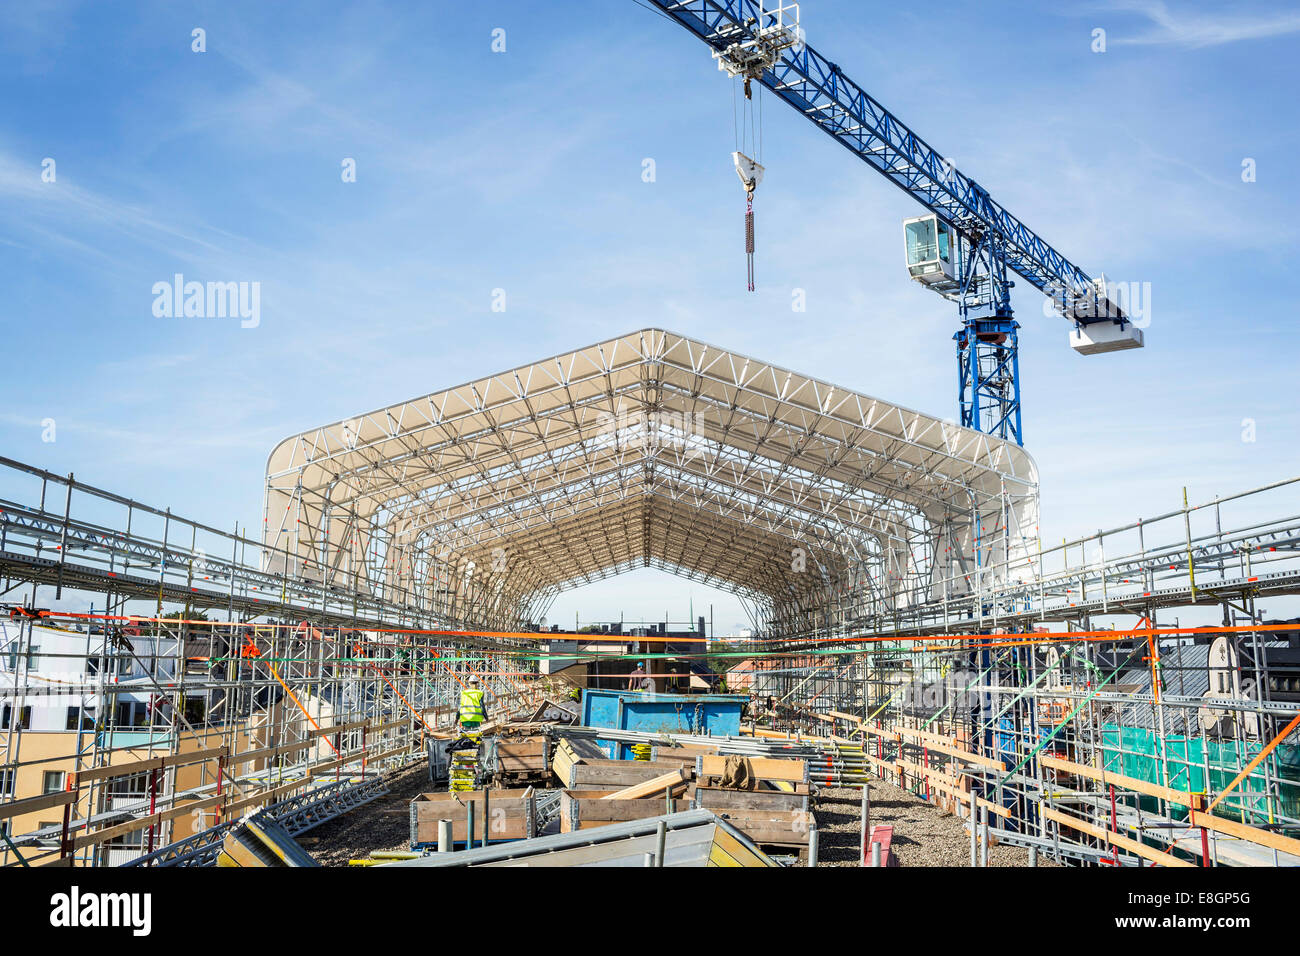 Construction site against sky - Stock Image